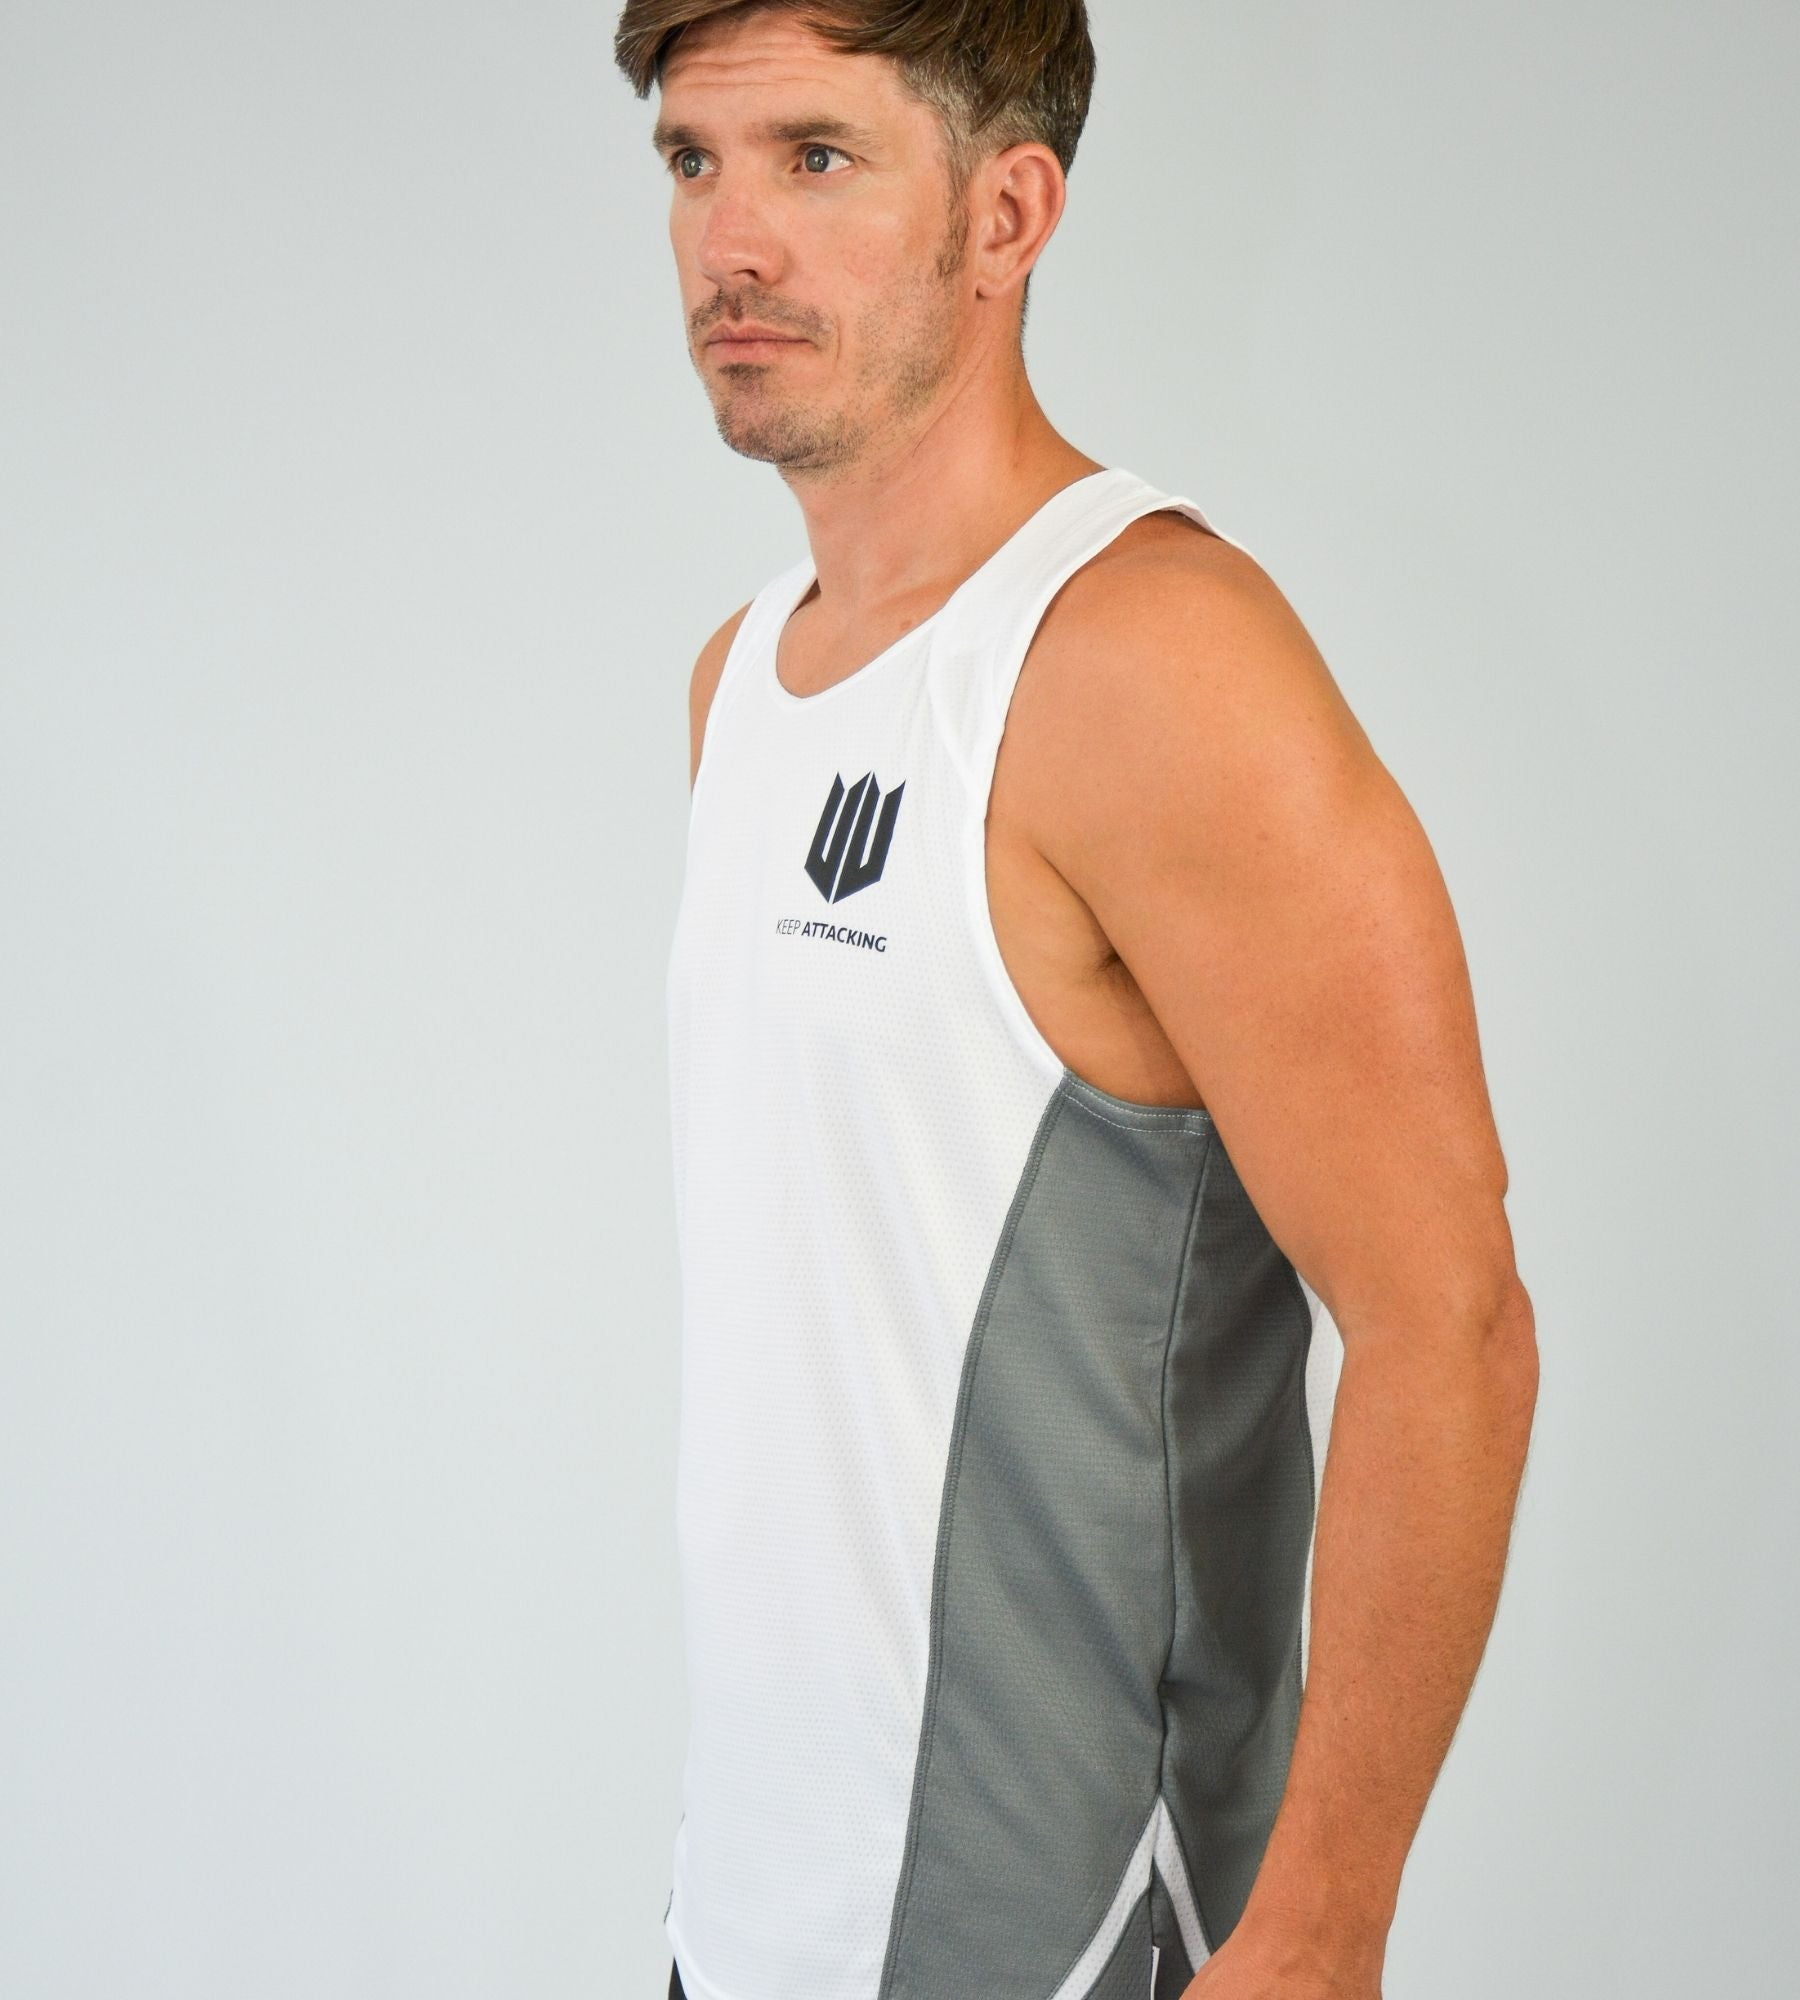 KA Mens Endurance Tank White Grey Lifestyle